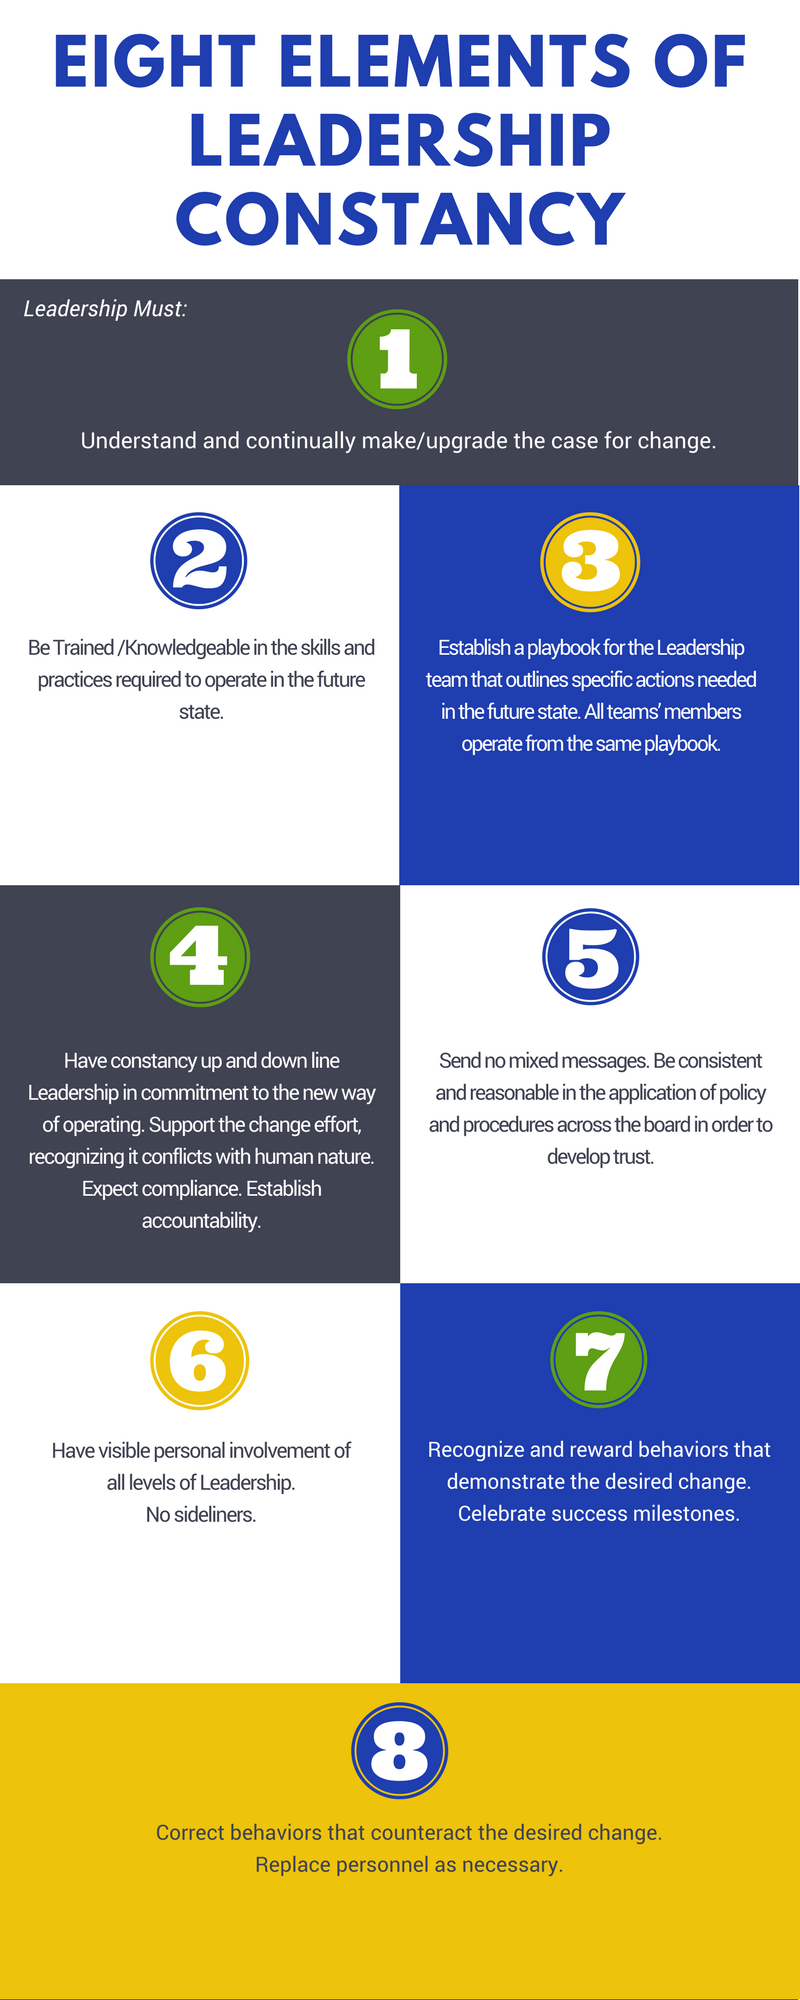 leadership constancy infographic